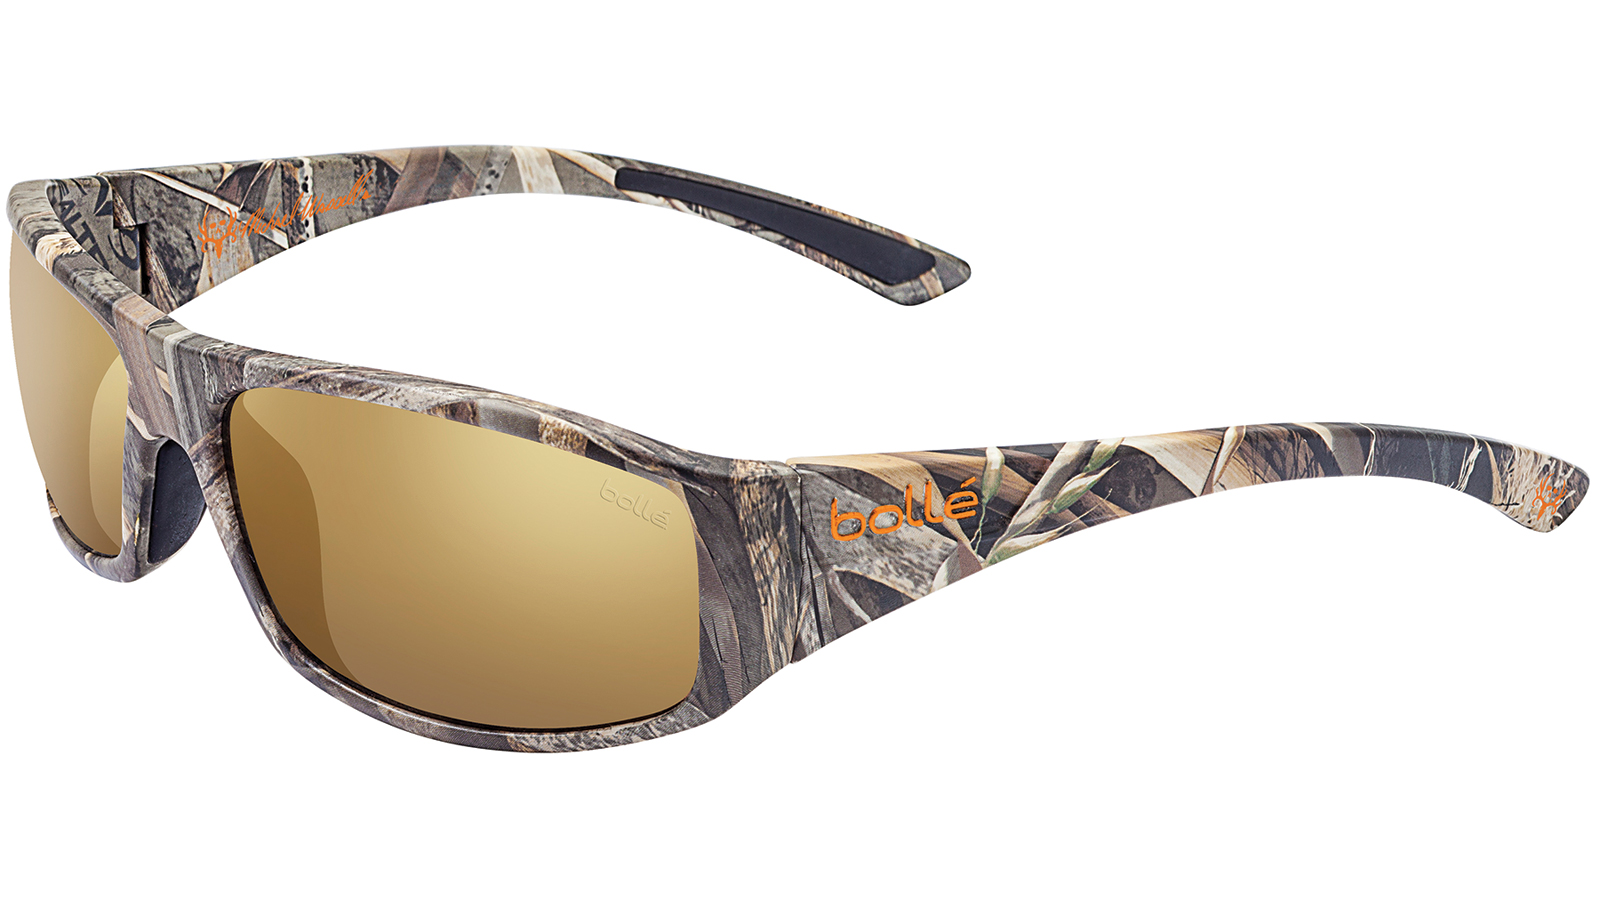 Bolle 12042 Weaver Shooting|Sporting Glasses Realtree Max-5